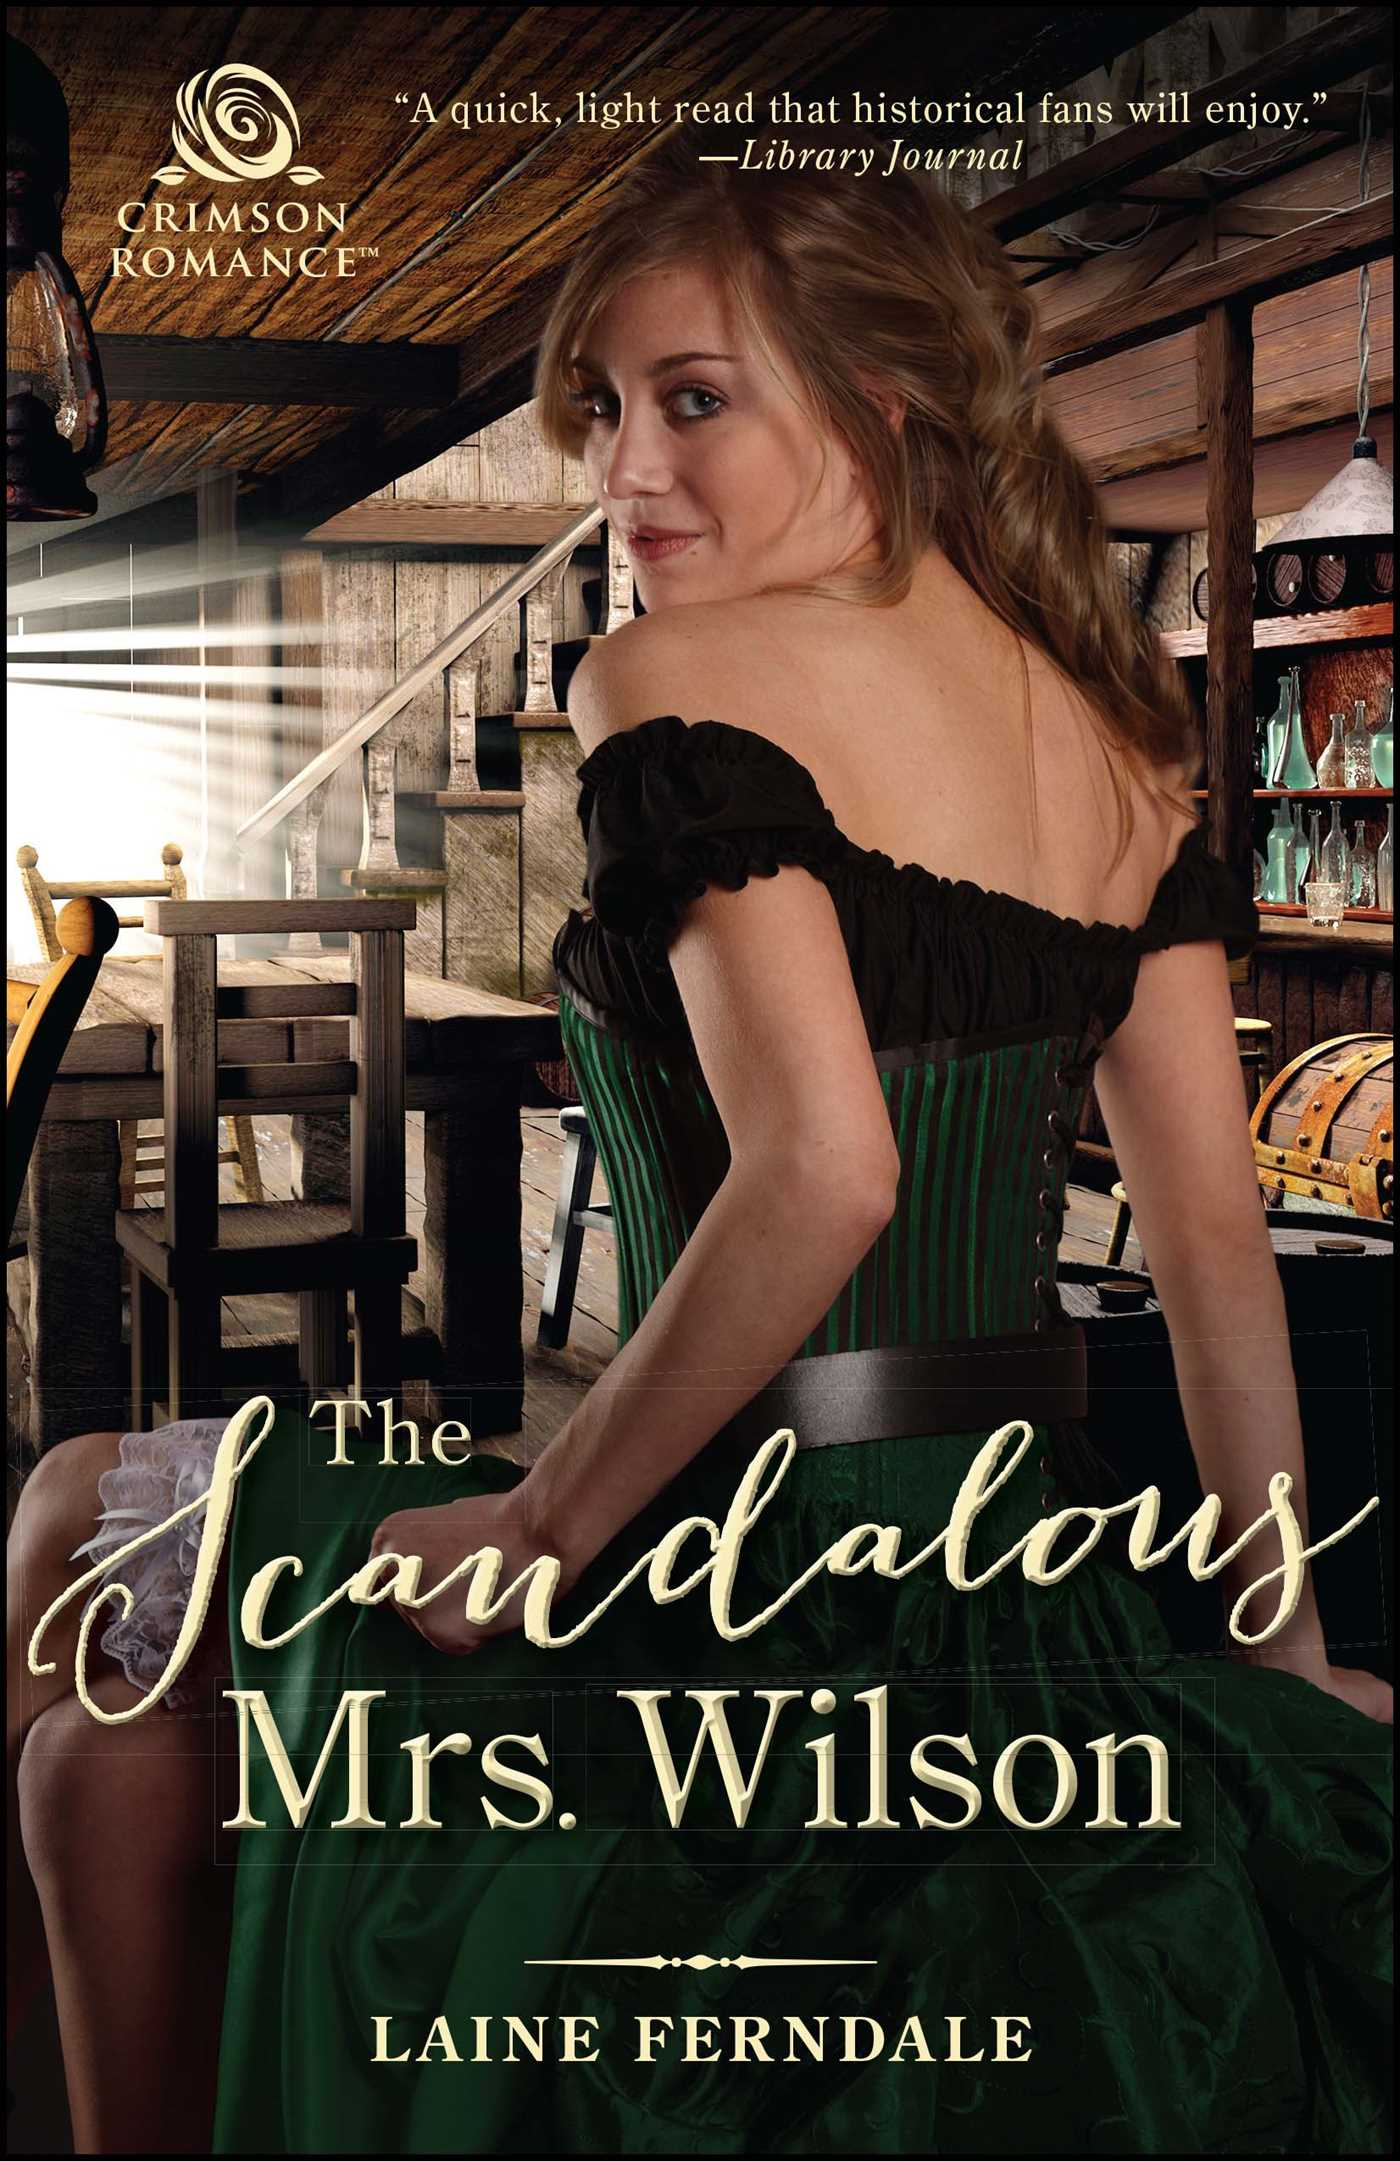 The scandalous mrs wilson 9781507206249 hr